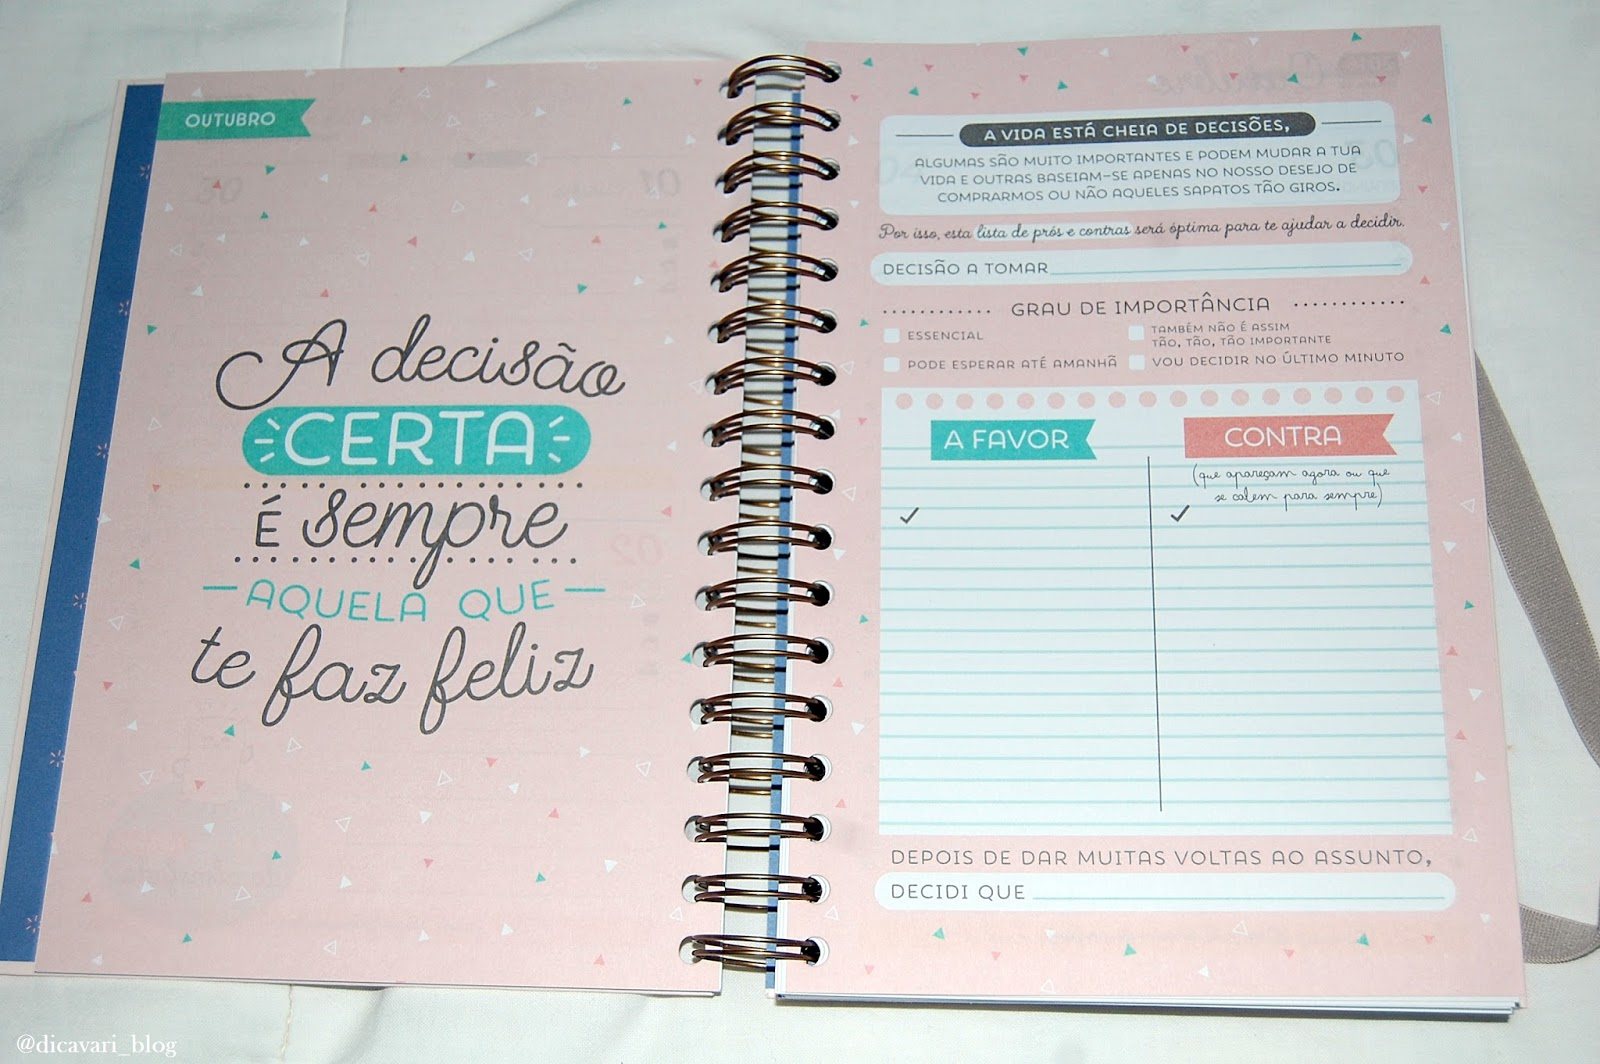 Agenda mr wonderful 2016 2017 dicavari for Agenda ministro interior